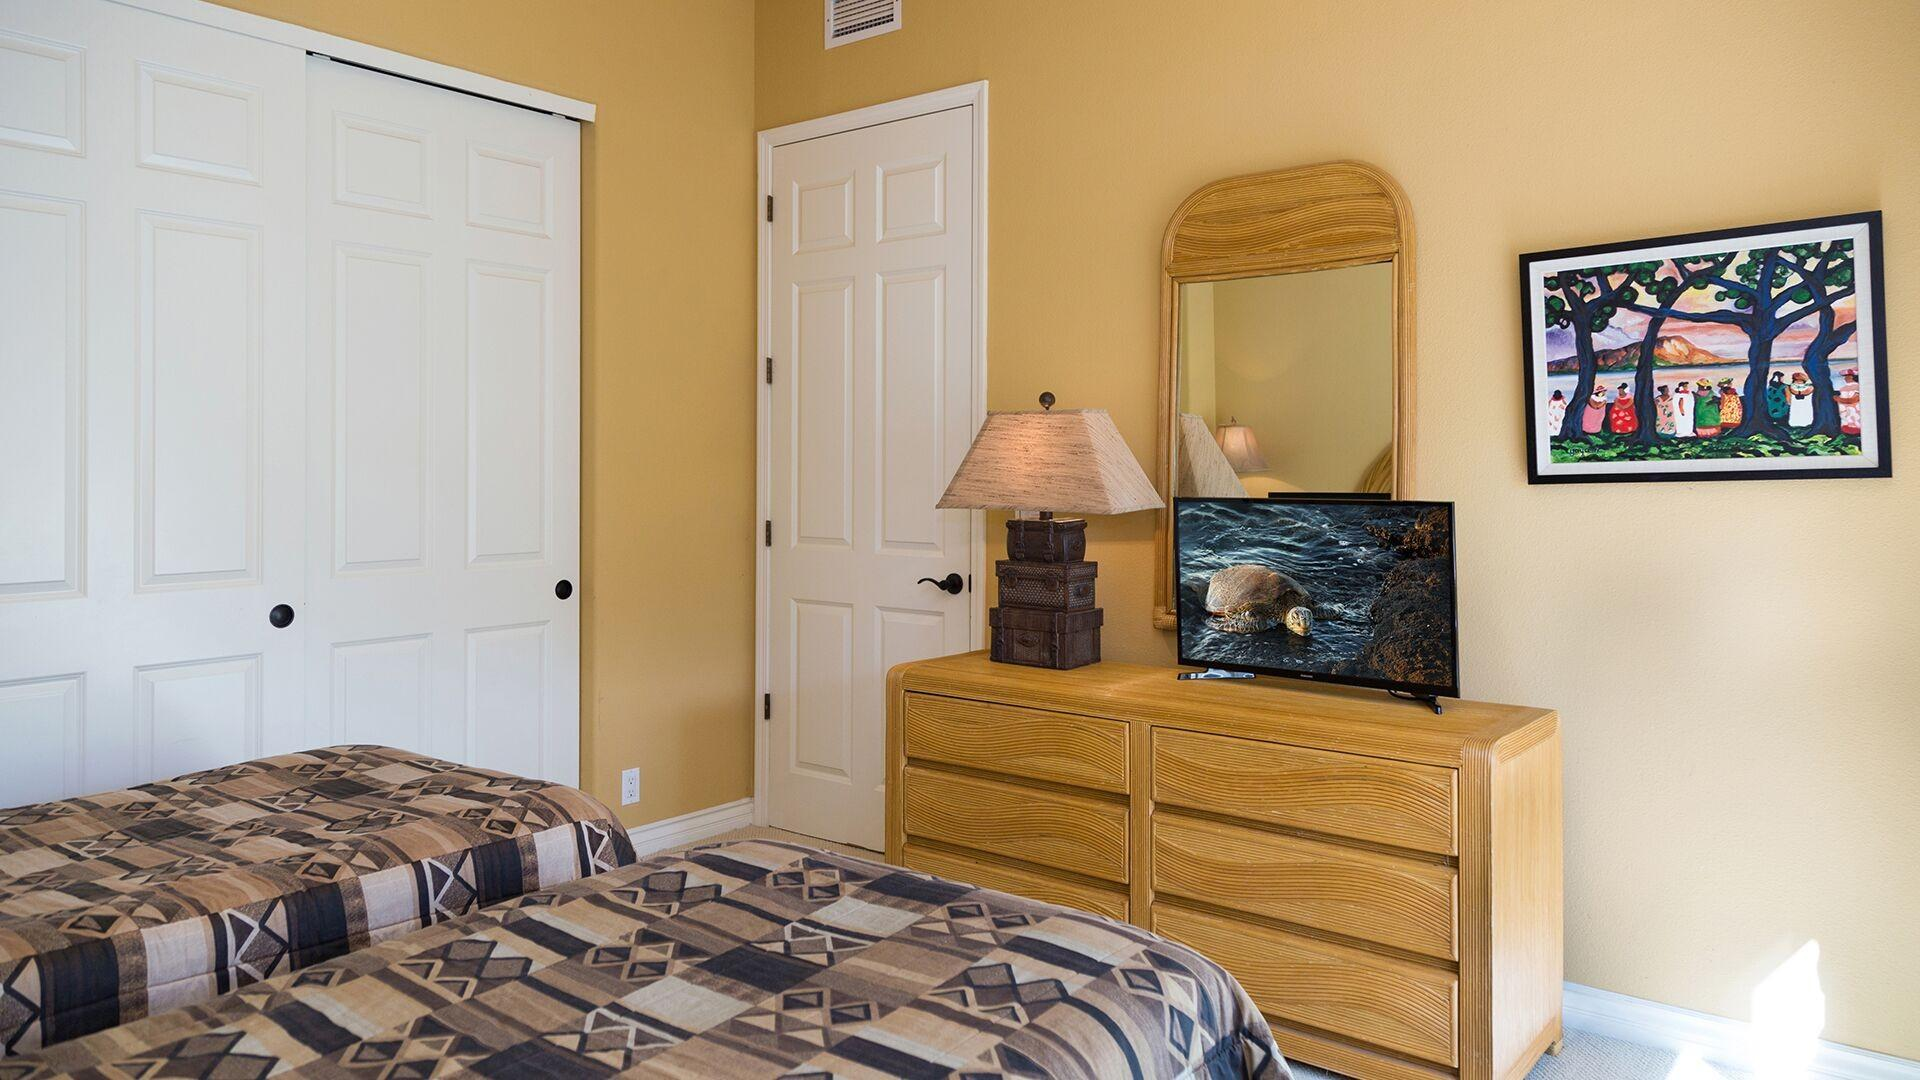 The Guest bedroom set up as twins provides a large closet and dresser with a Smart TV.